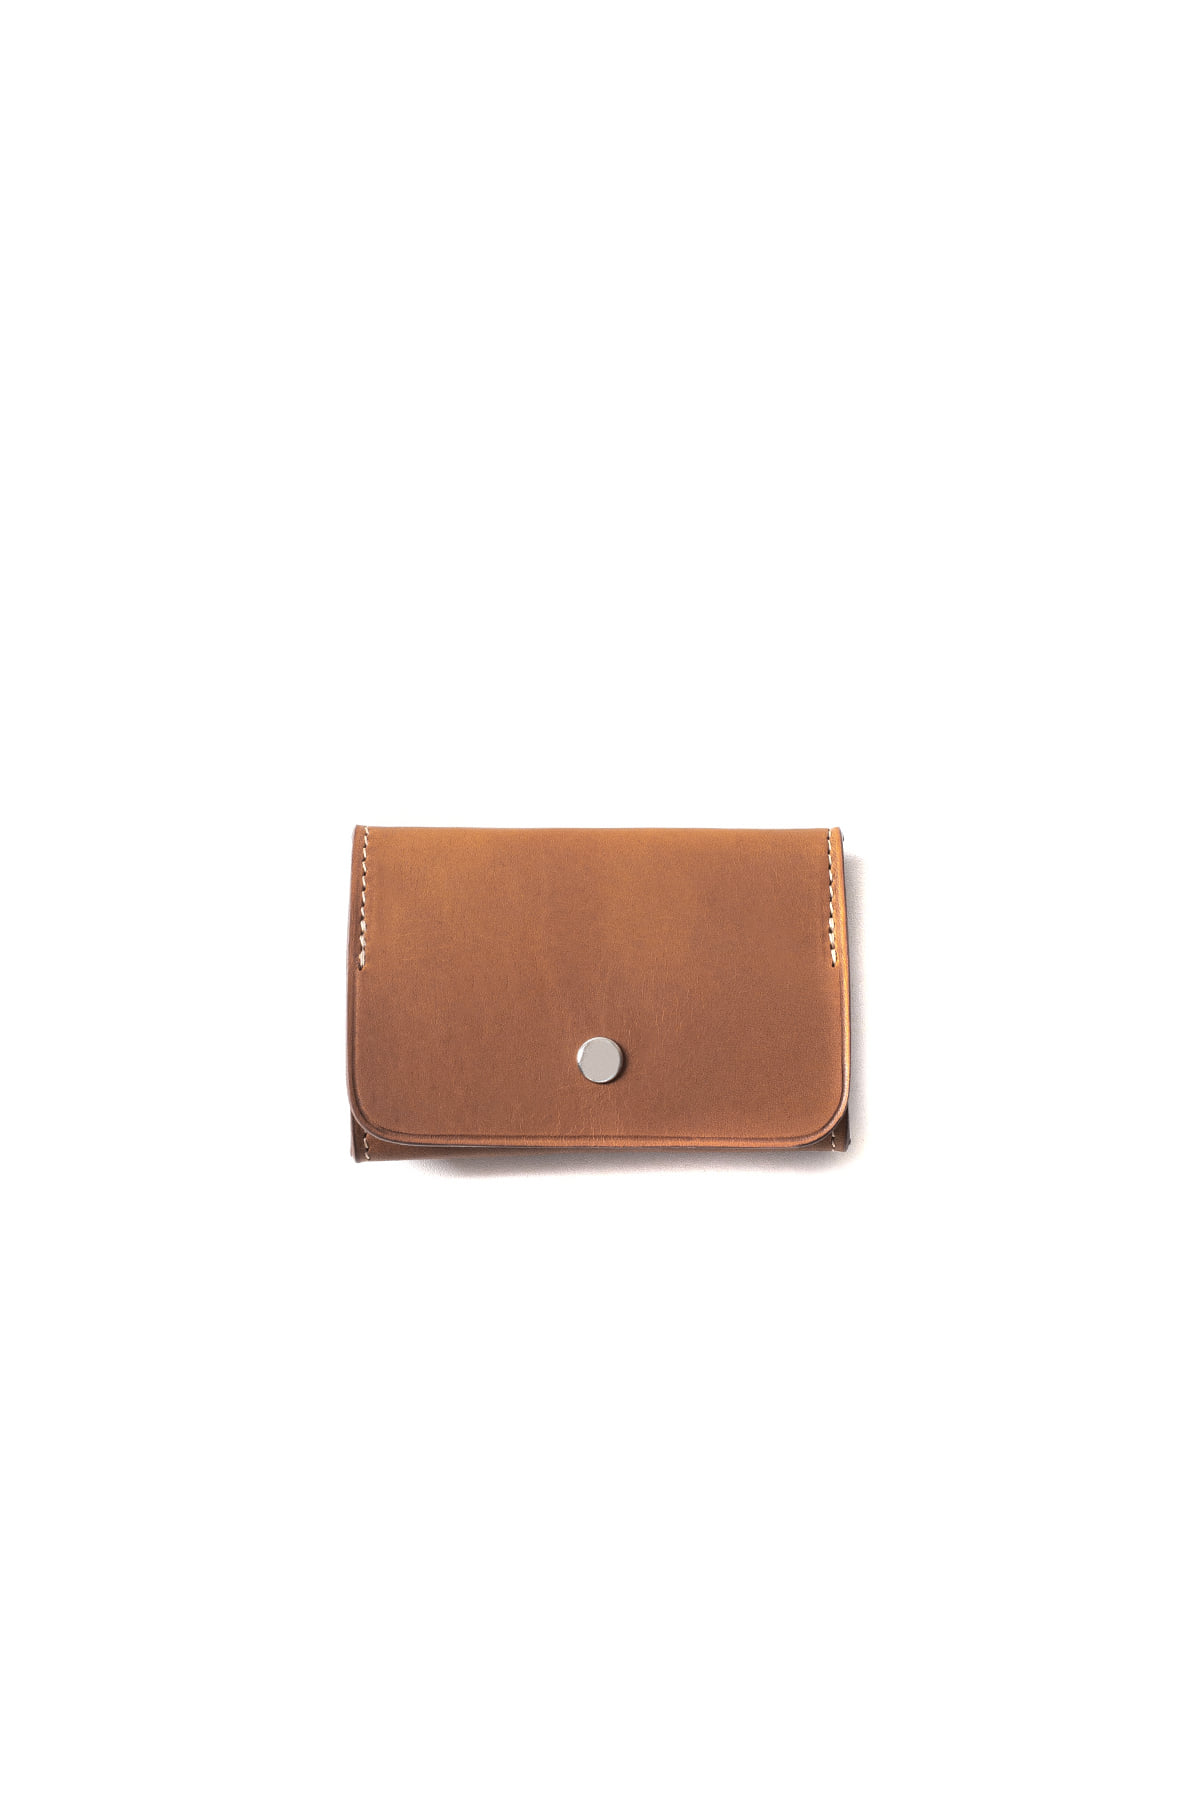 STEVE MONO : 09/9 Classic Coins Holder (Brown)